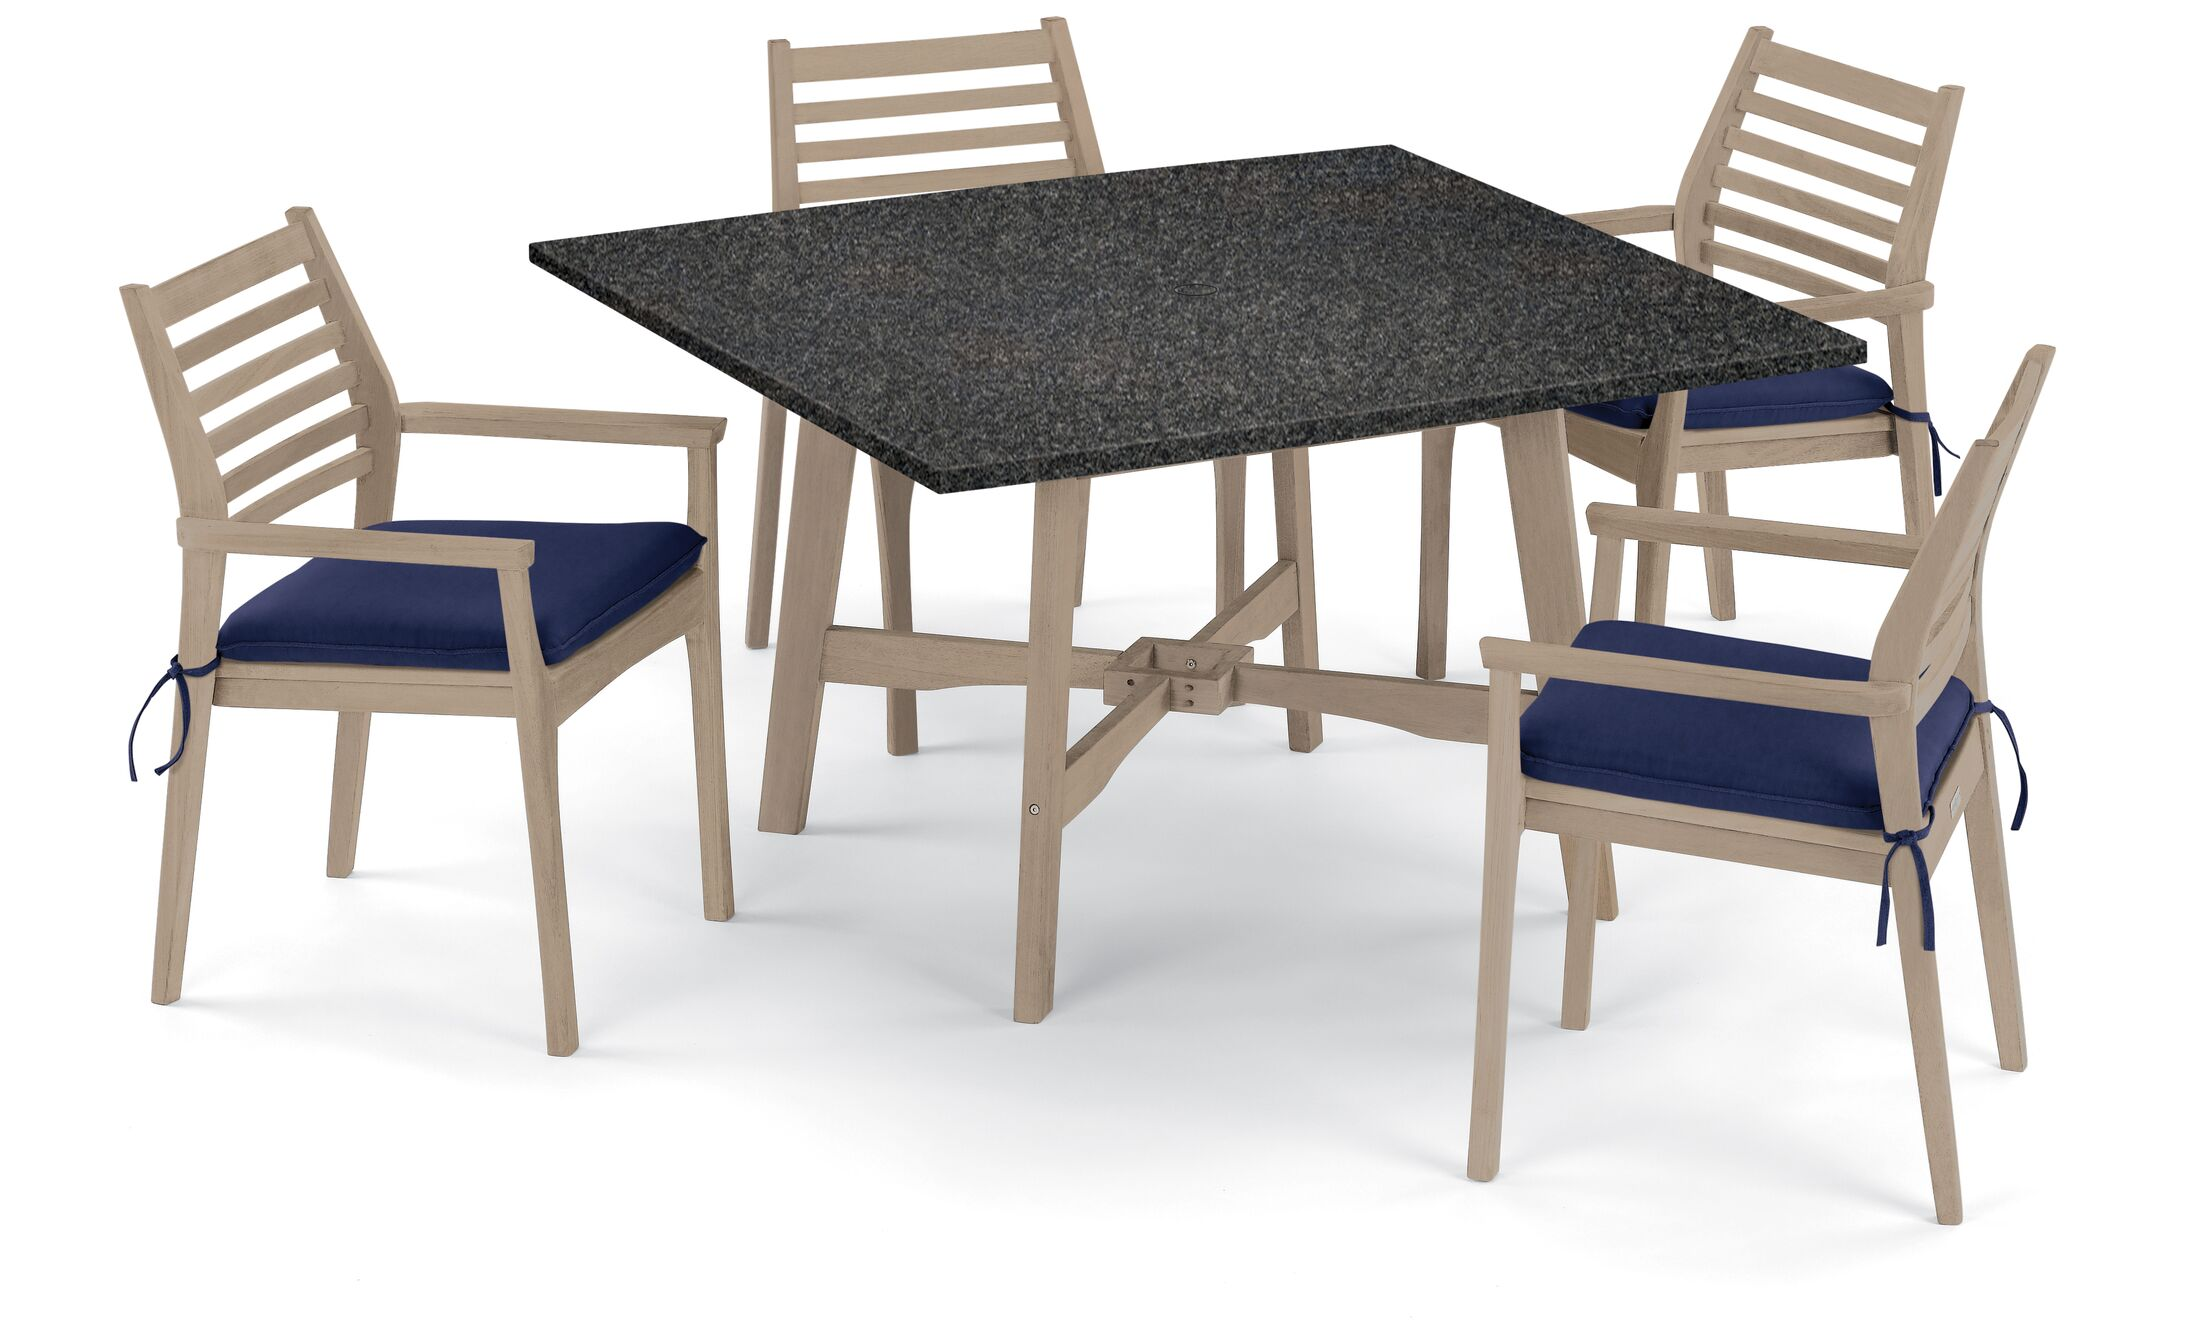 Eichhorn 5 Piece Dining Set with Cushions Cushion Color: Navy Blue, Table Top Color: Charcoal